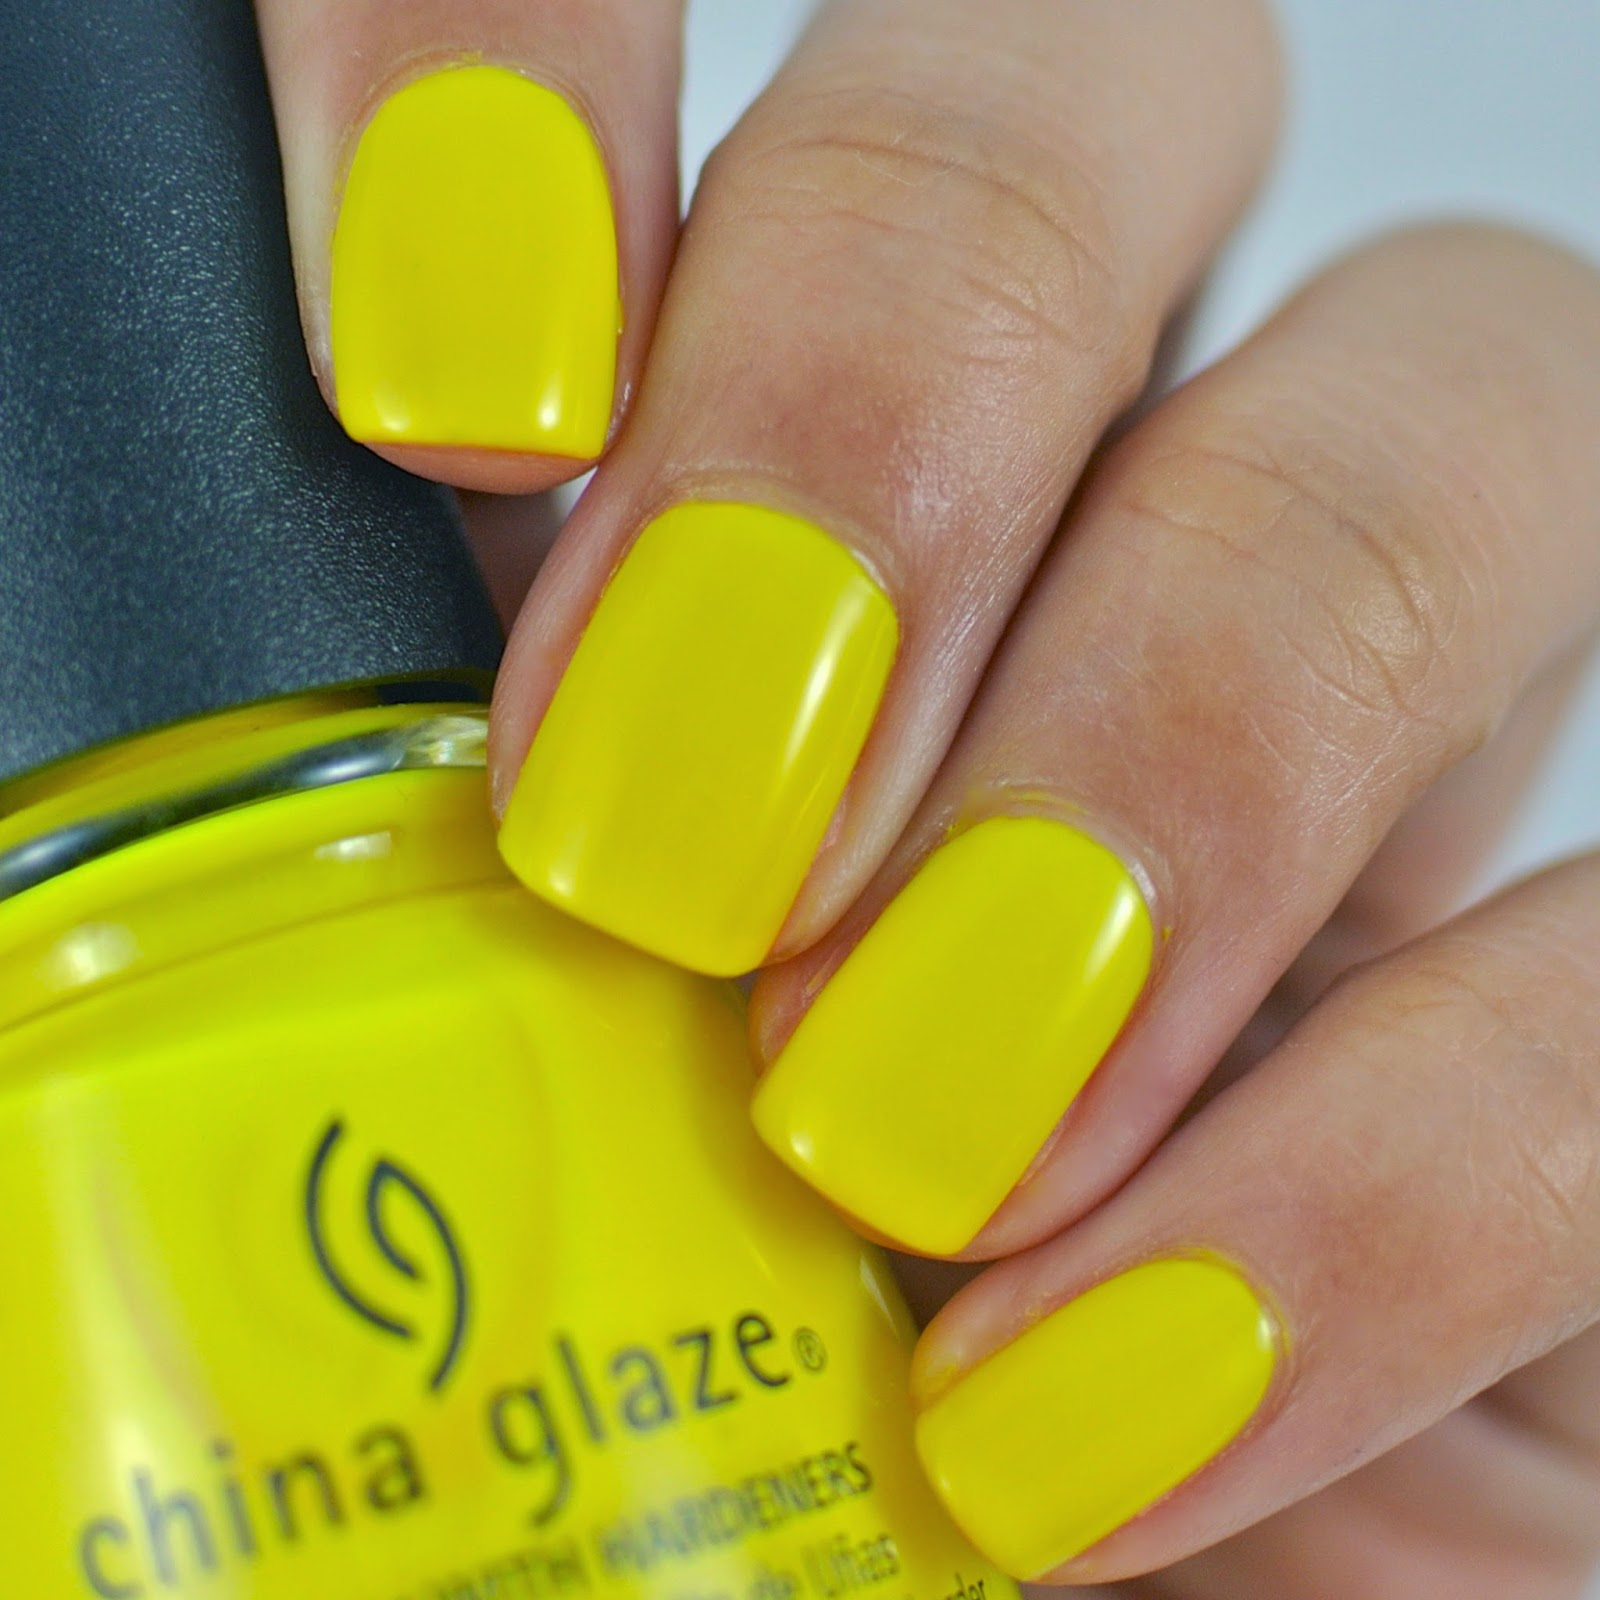 China+Glaze+Daisy+Know+My+Name?